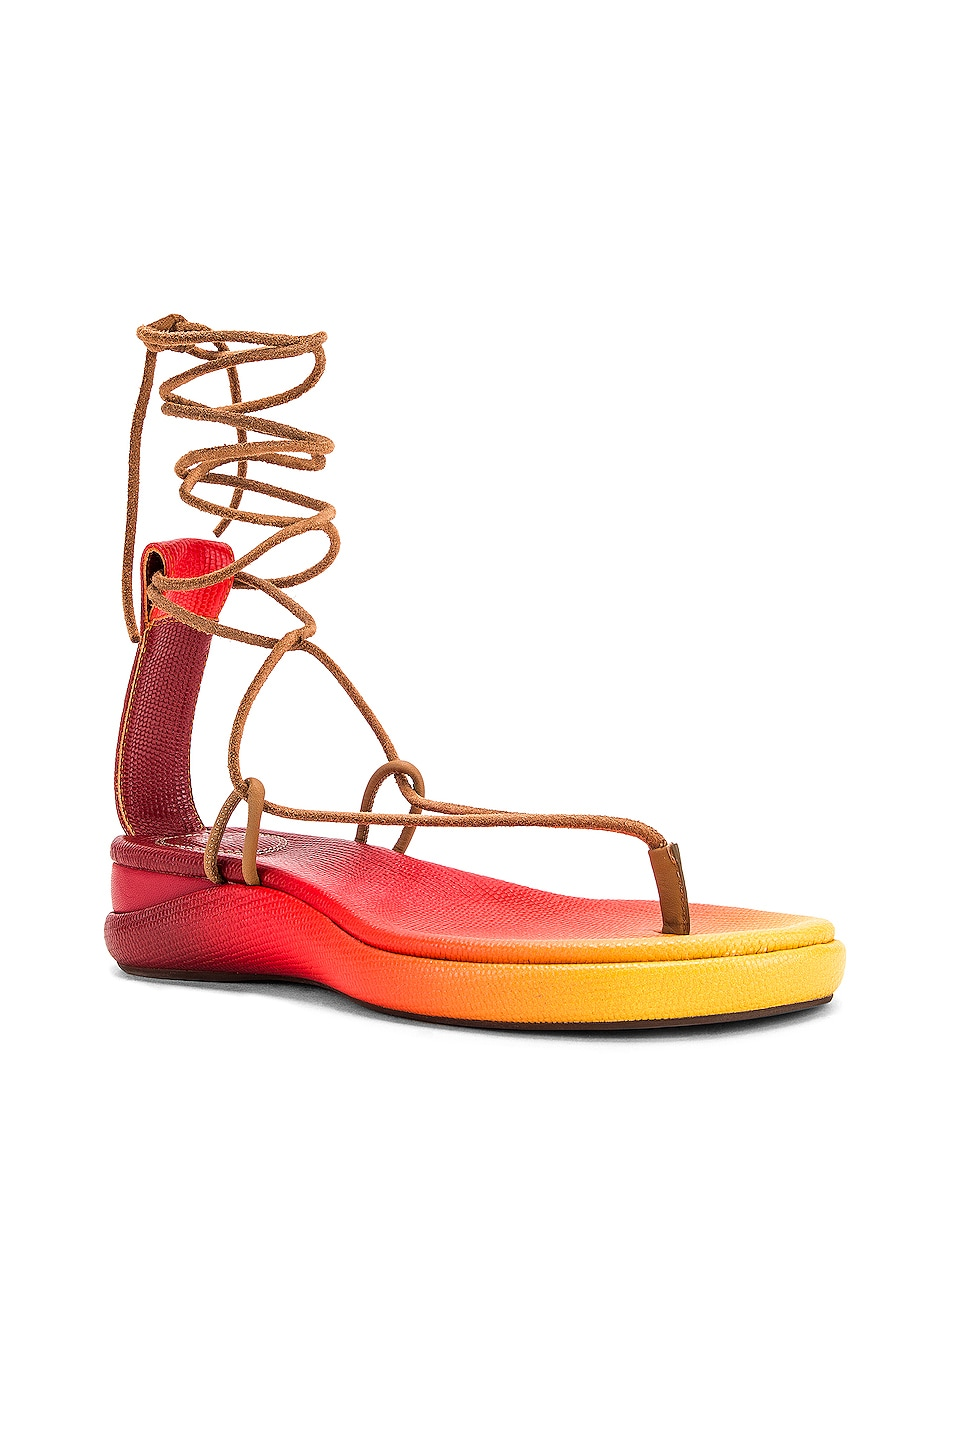 Image 2 of Chloe Tie Sandals in Yellow & Red